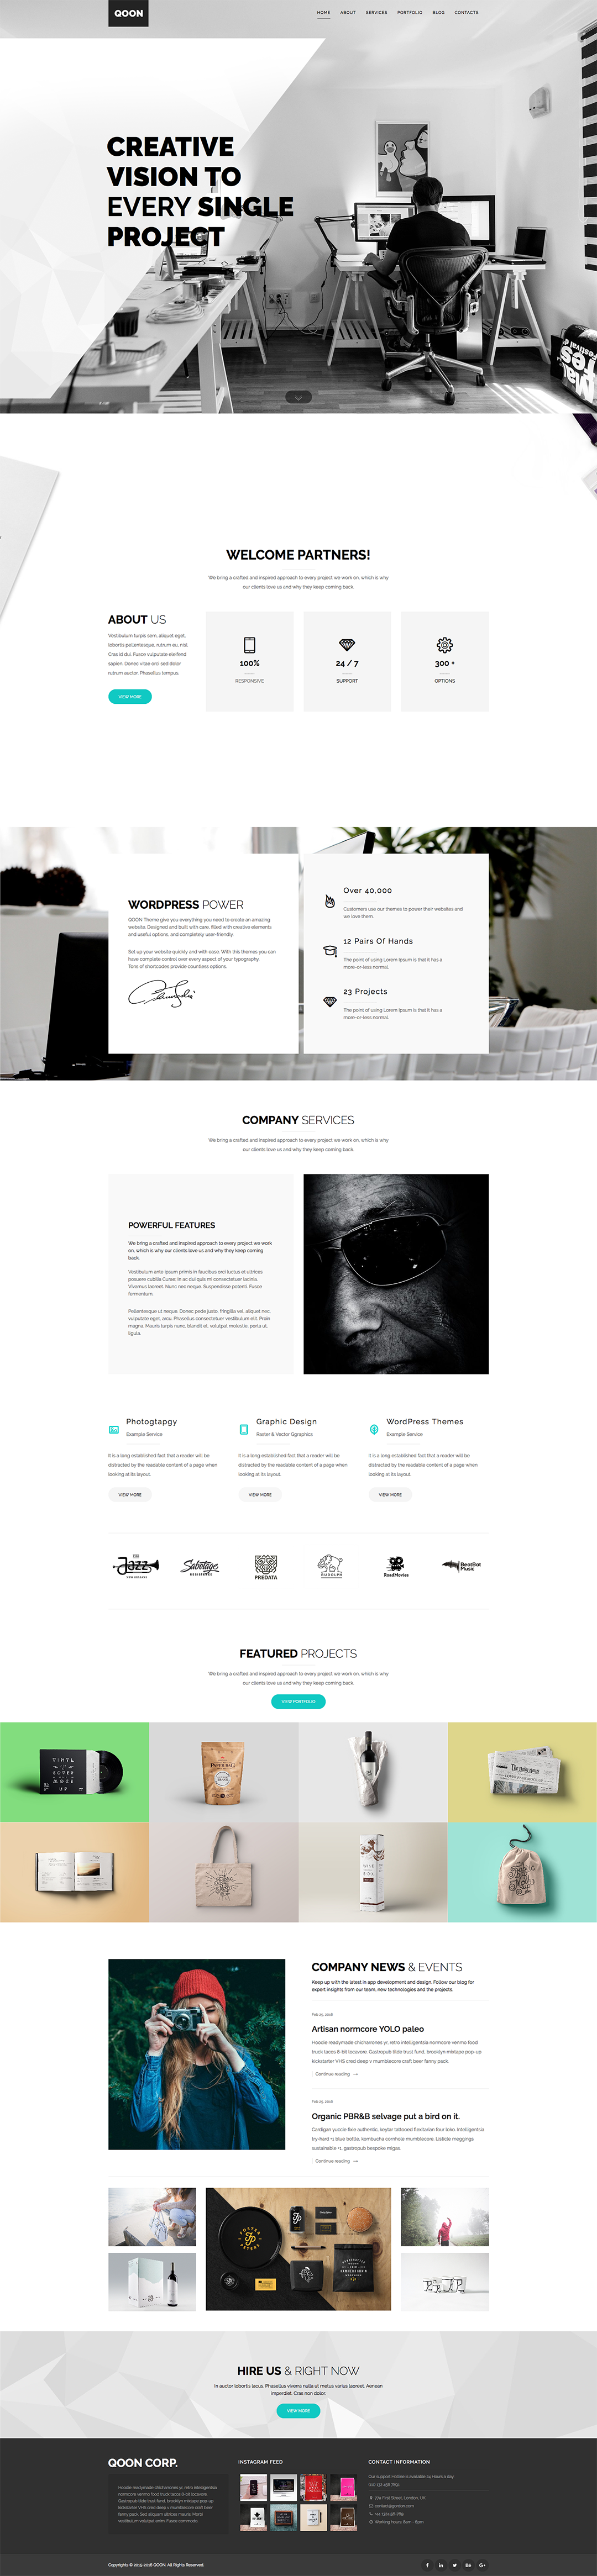 QOON Creative WordPress Theme by OrangeIdea on Behance